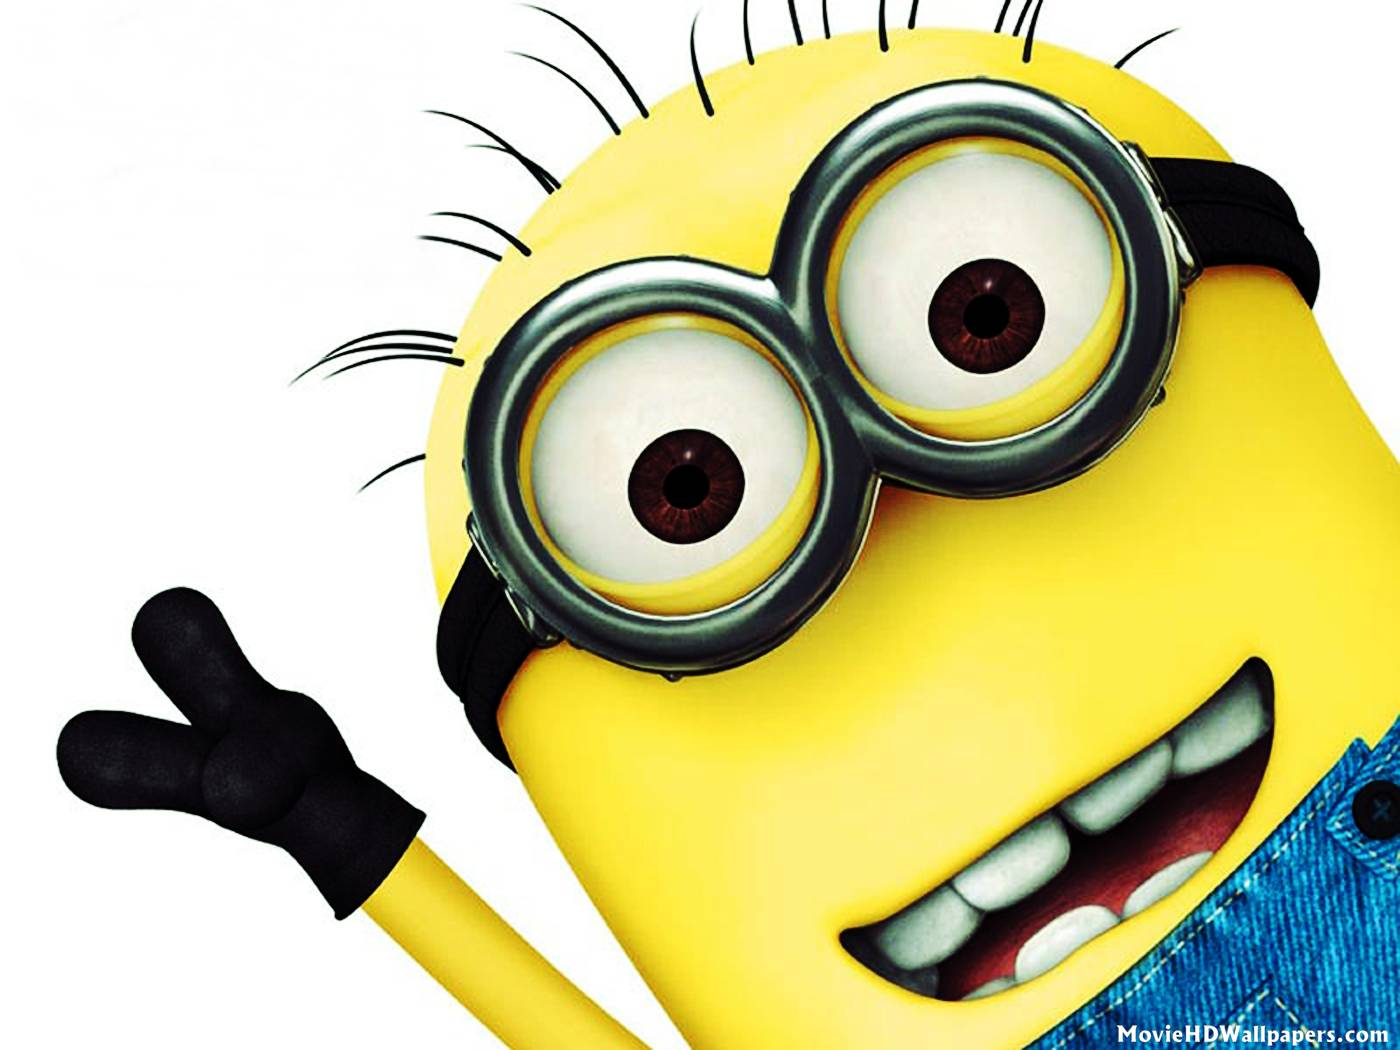 Despicable me hd wallpapers wallpaper cave despicable me 2 wallpaper despicable me 2 wallpaper part 2 voltagebd Gallery